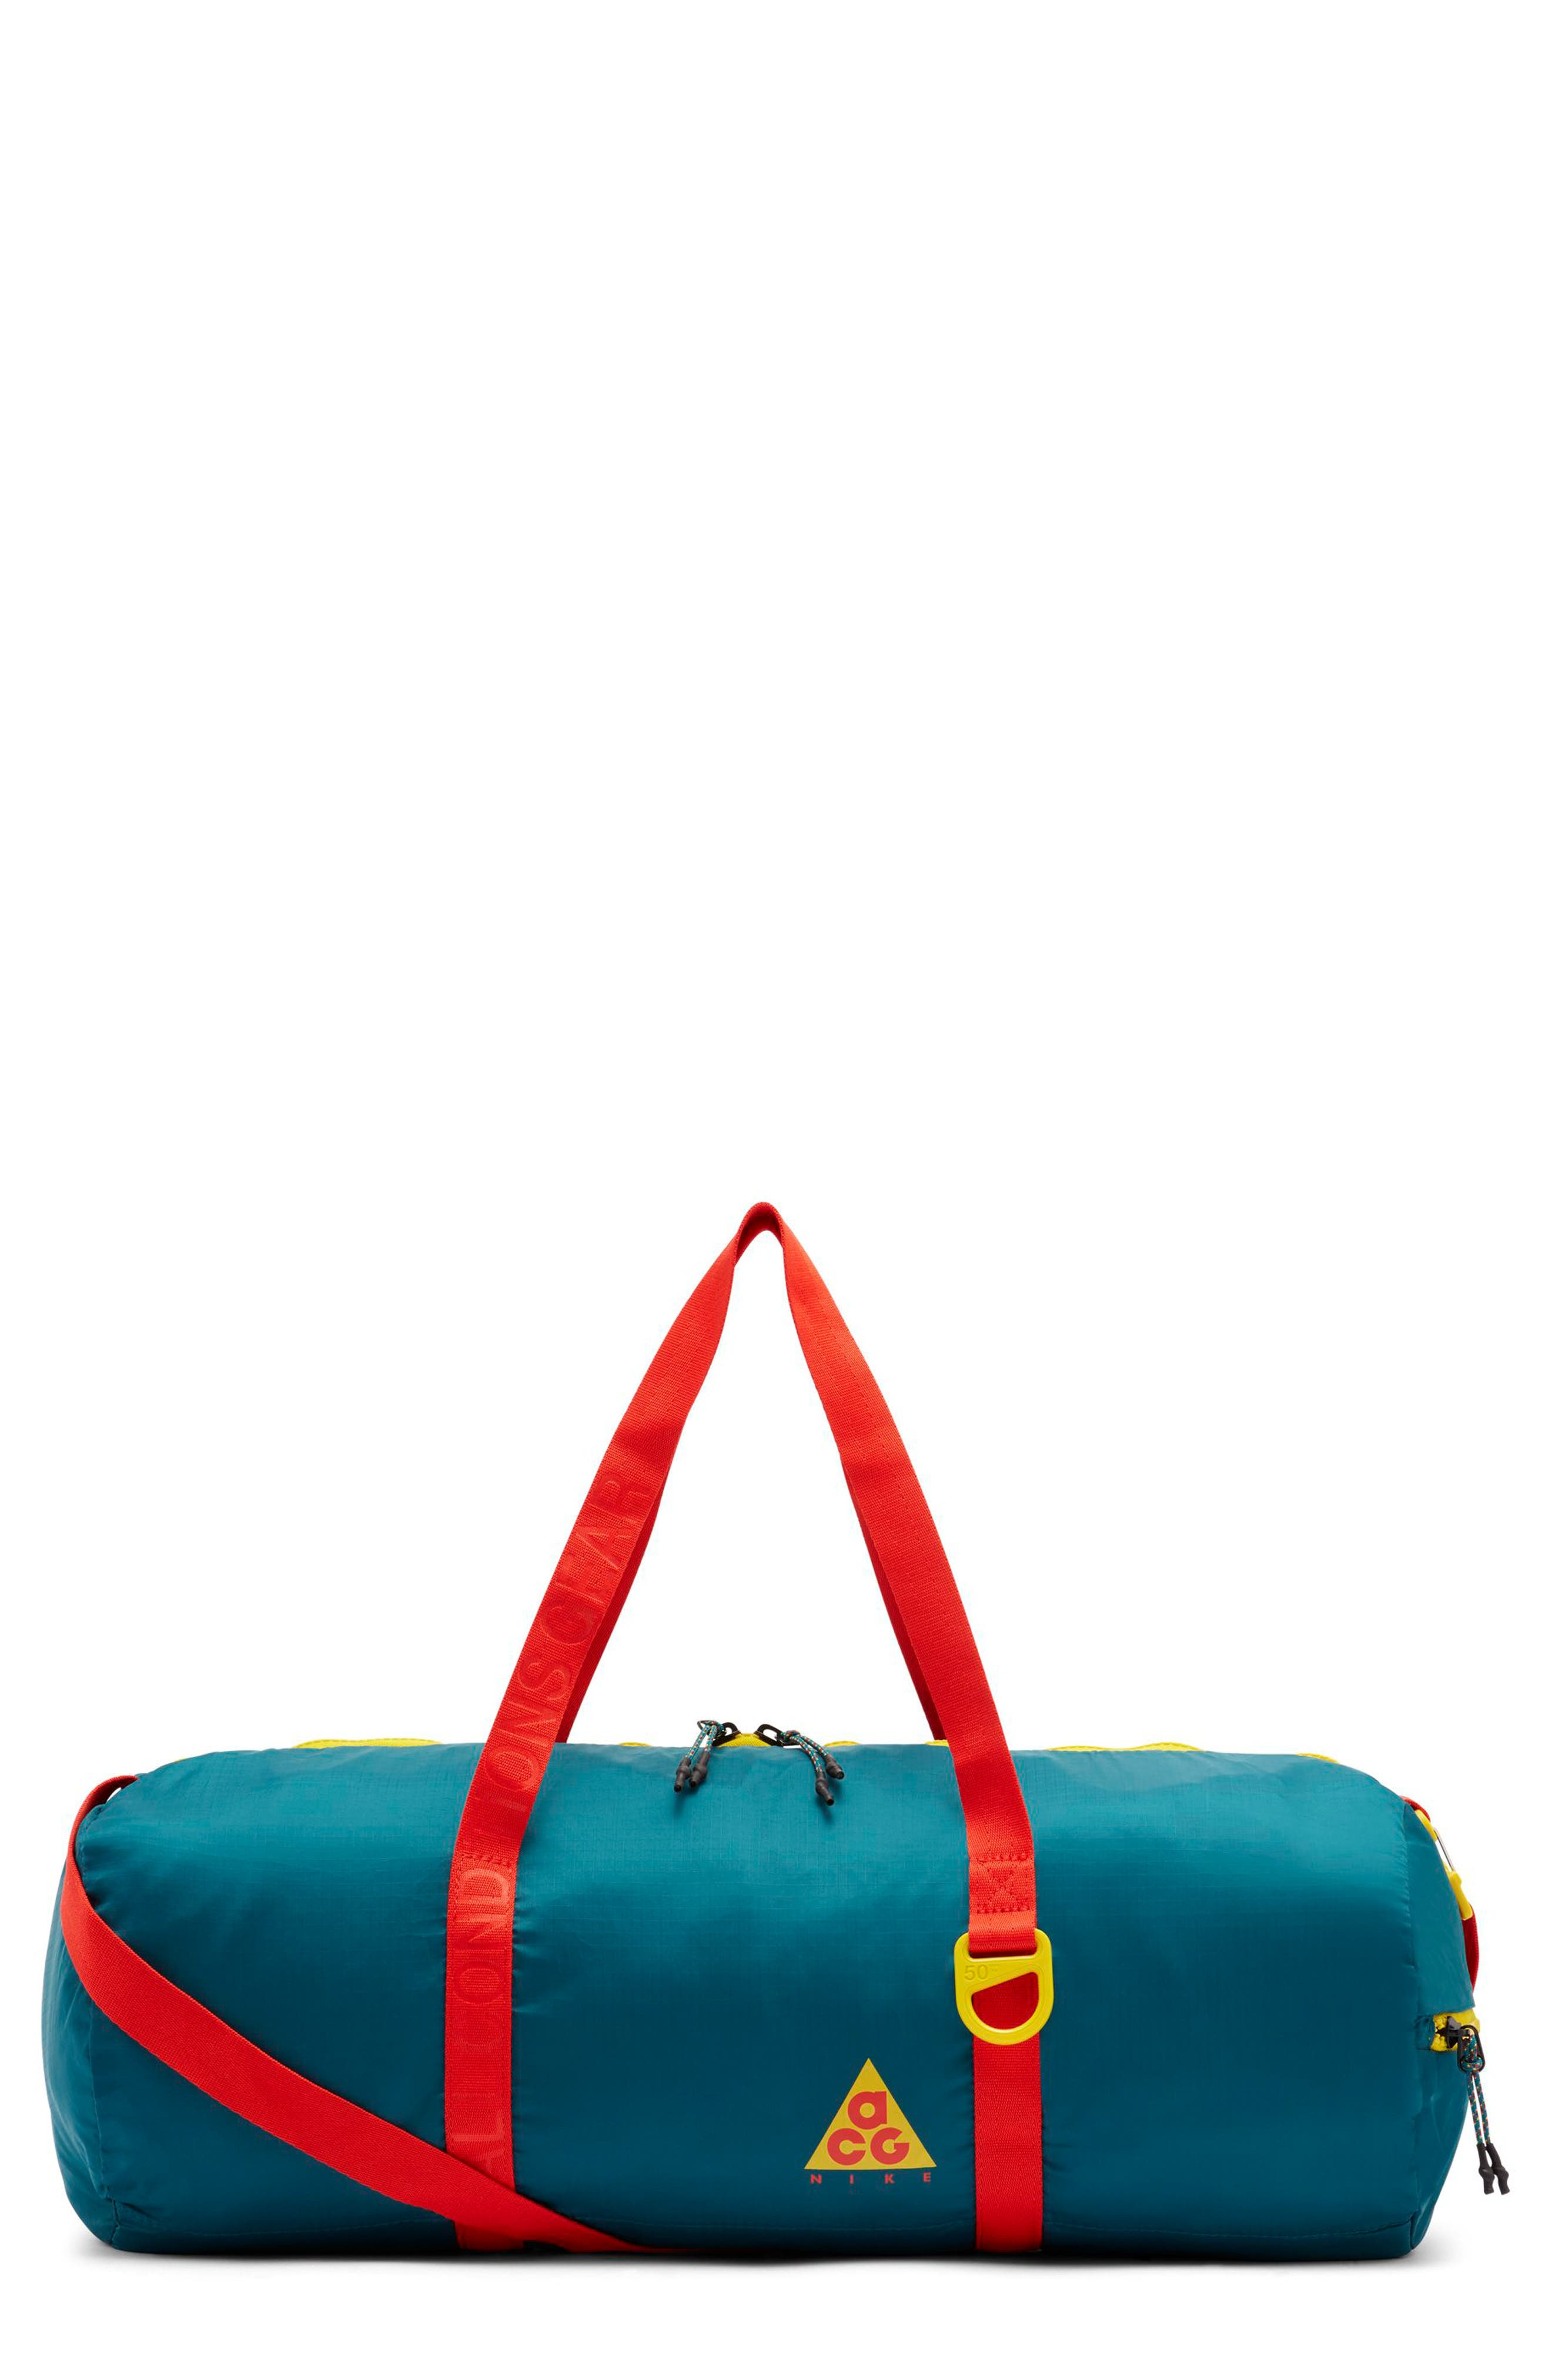 Packable Duffel Bag,                             Main thumbnail 1, color,                             GEODE TEAL/ HABANERO RED